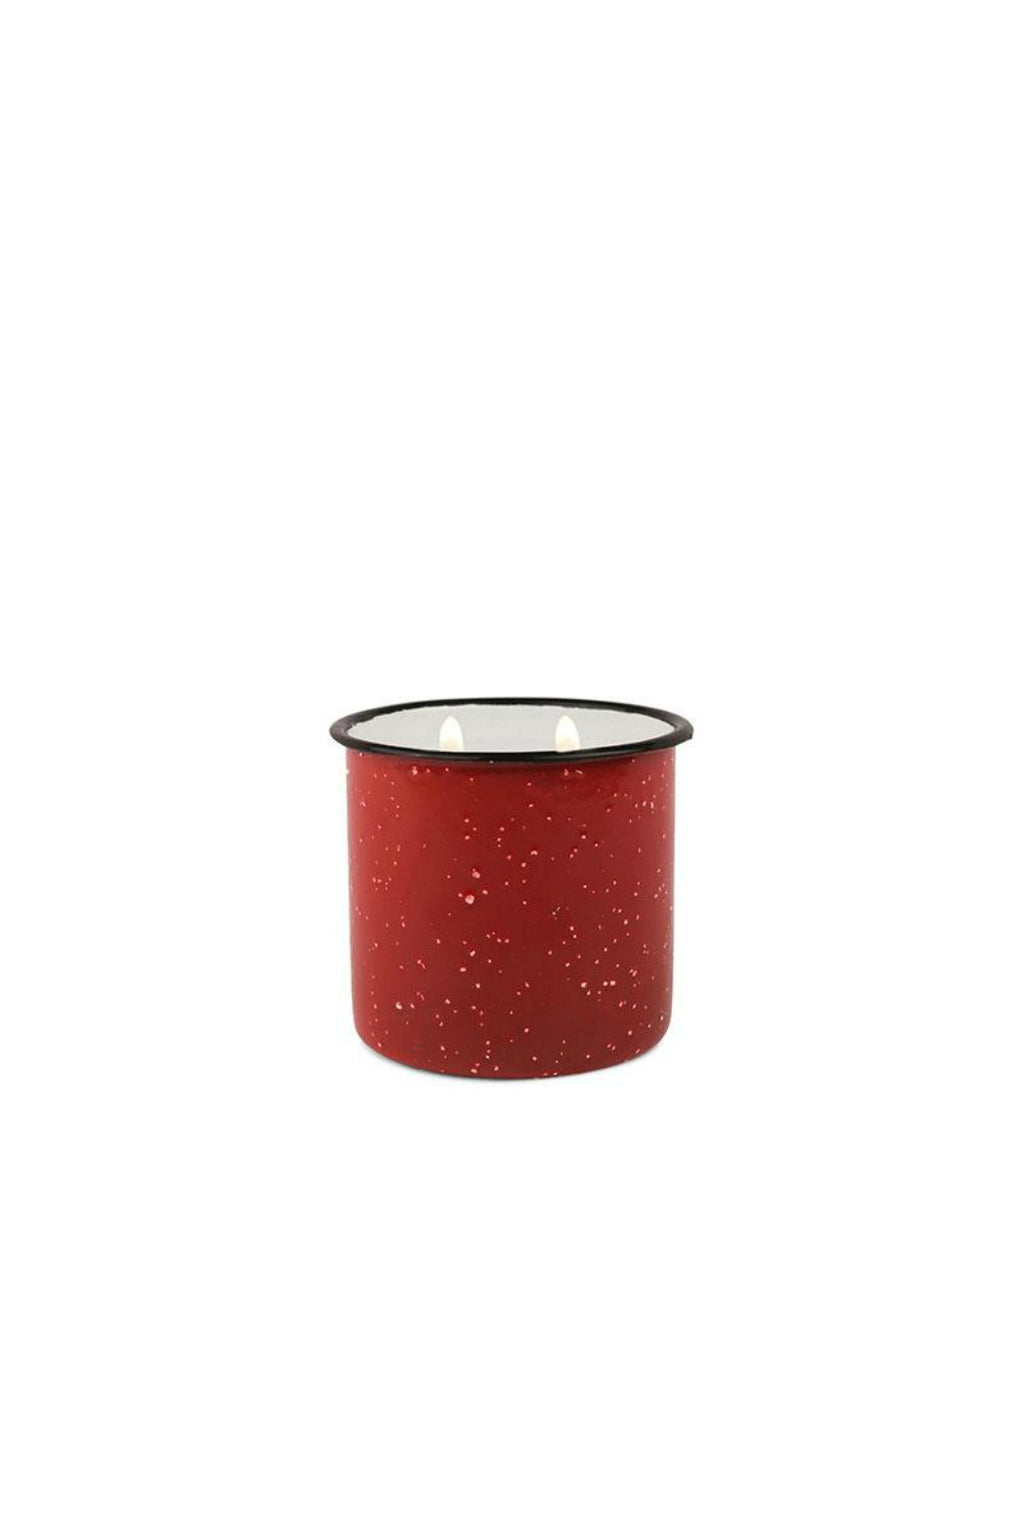 Paddywax Alpine Candle - Pomegranate & Spruce